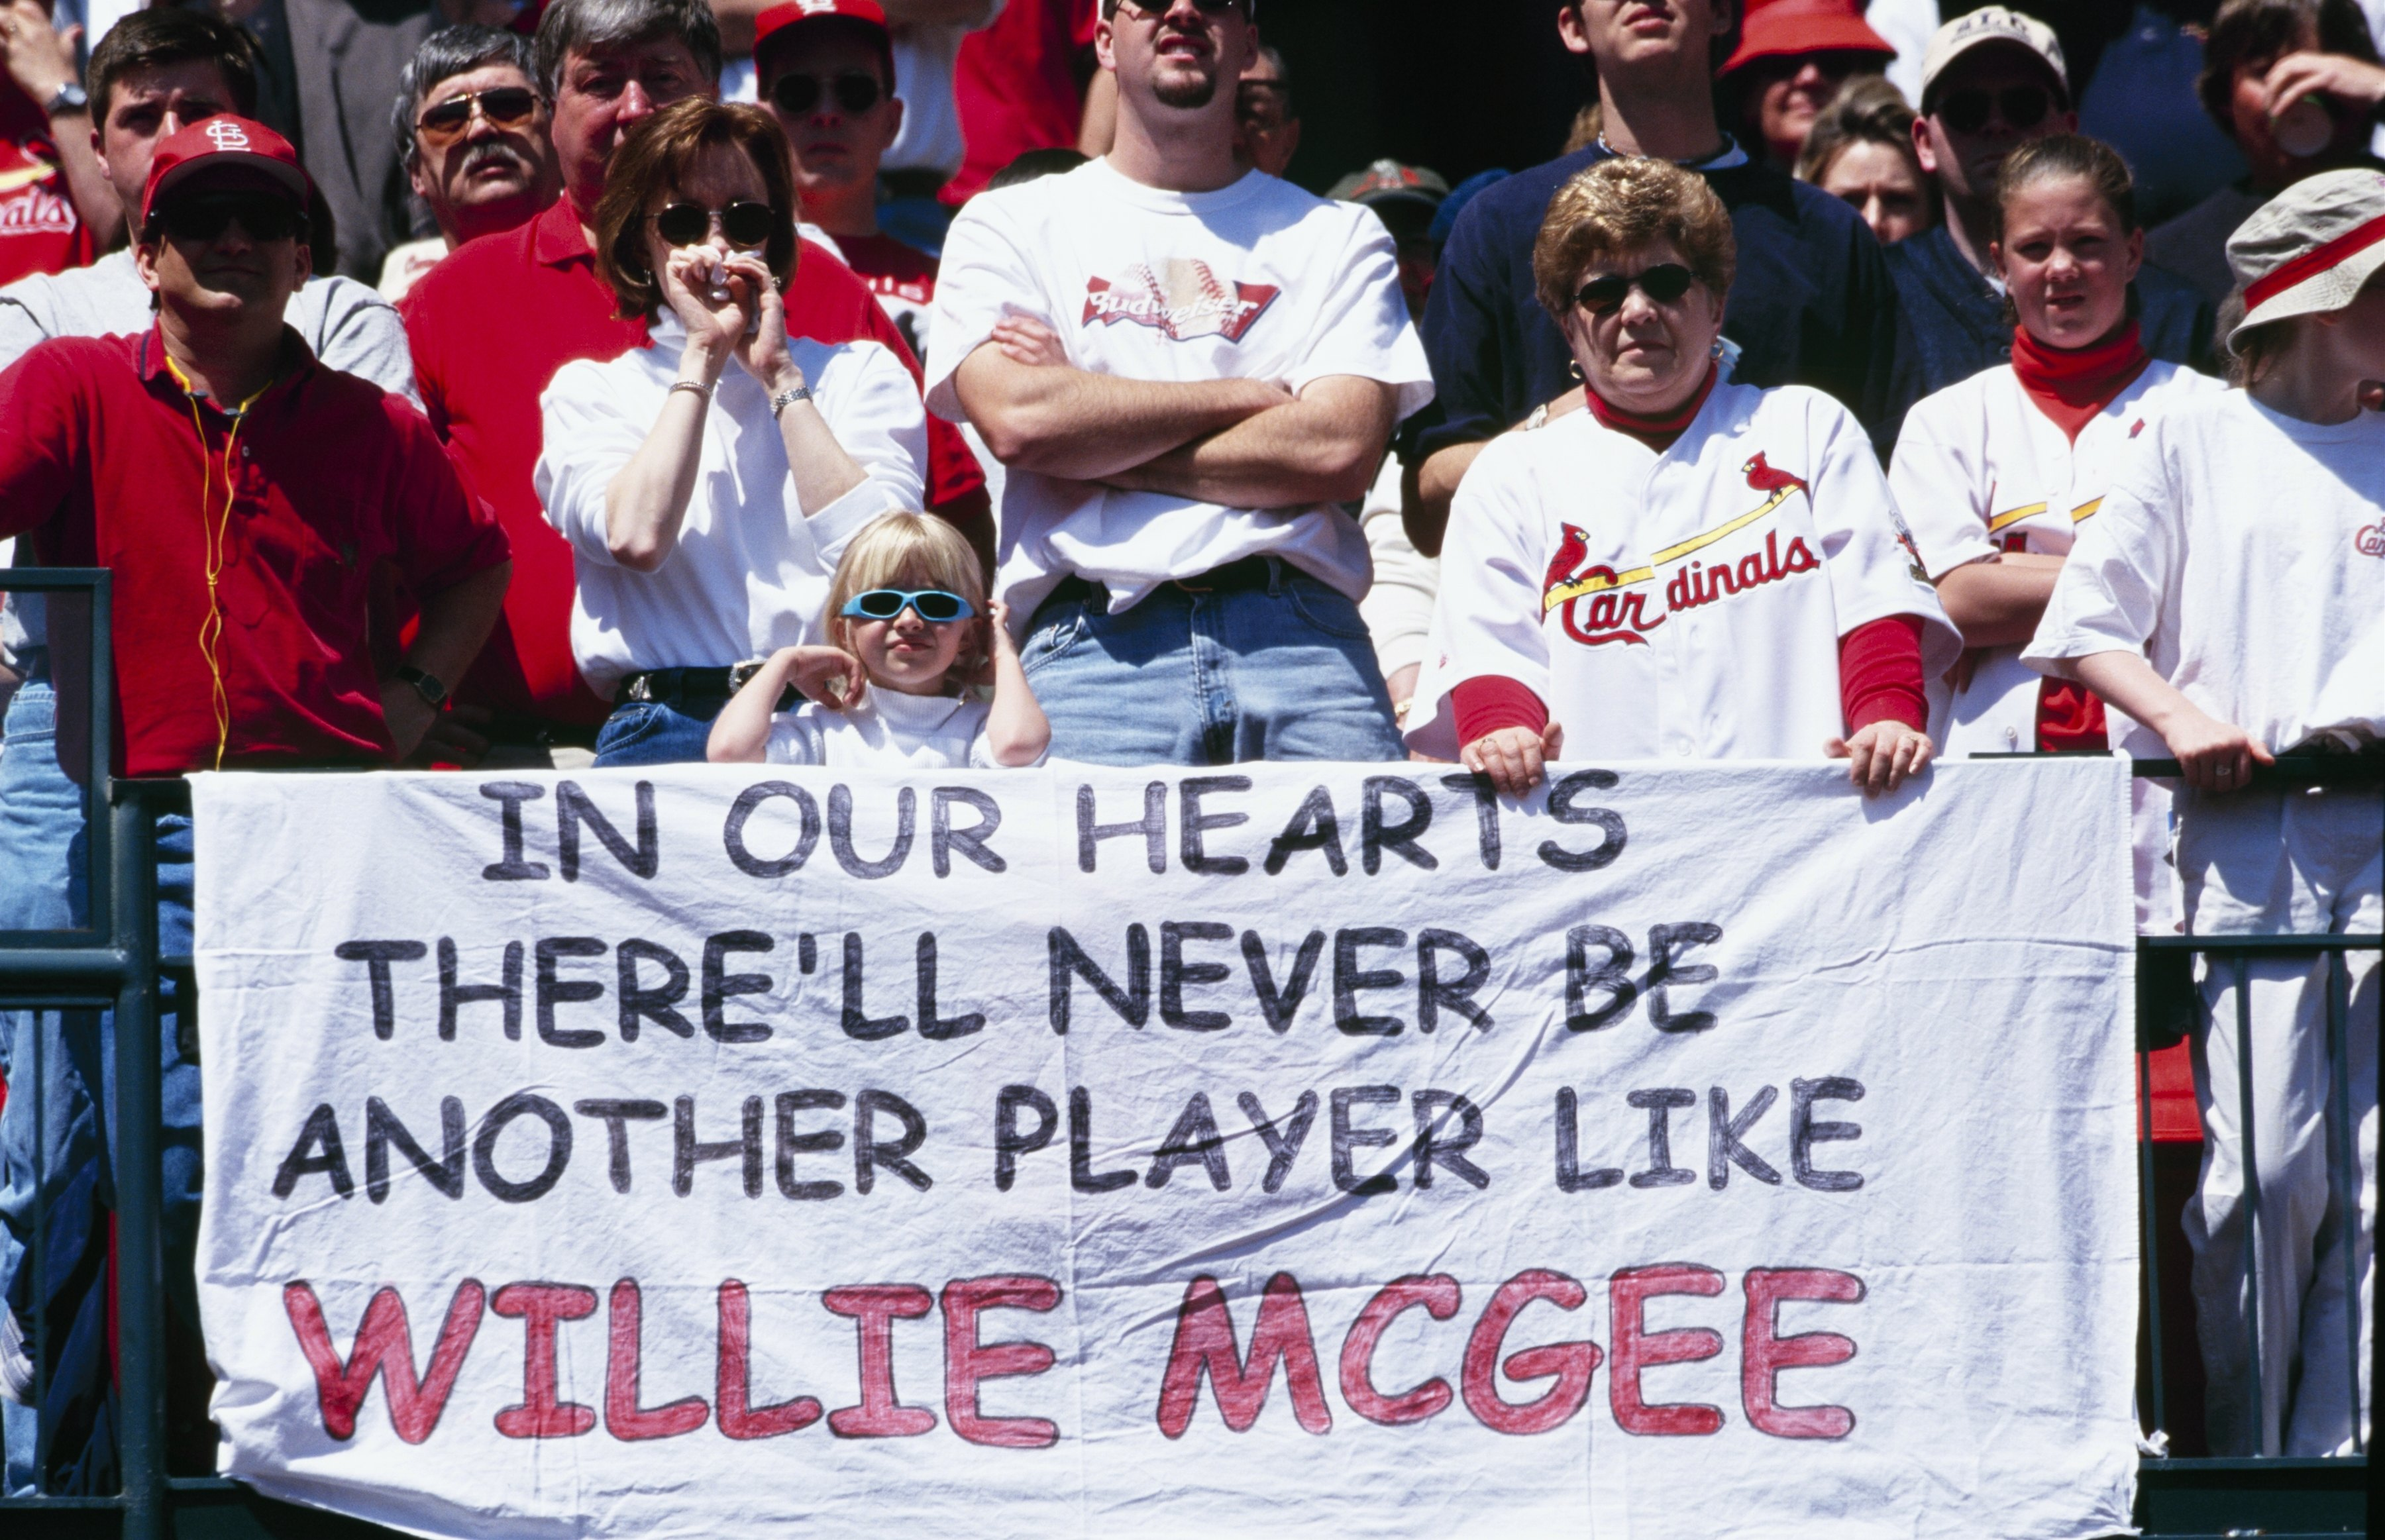 ST. LOUIS - APRIL 9:  St. Louis Cardinals fans display a banner during Willie McGee Day before the game against the Milwaukee Brewers at Busch Stadium on April 9, 2000 in St. Louis, Missouri. (Photo by Elsa/Getty Images)